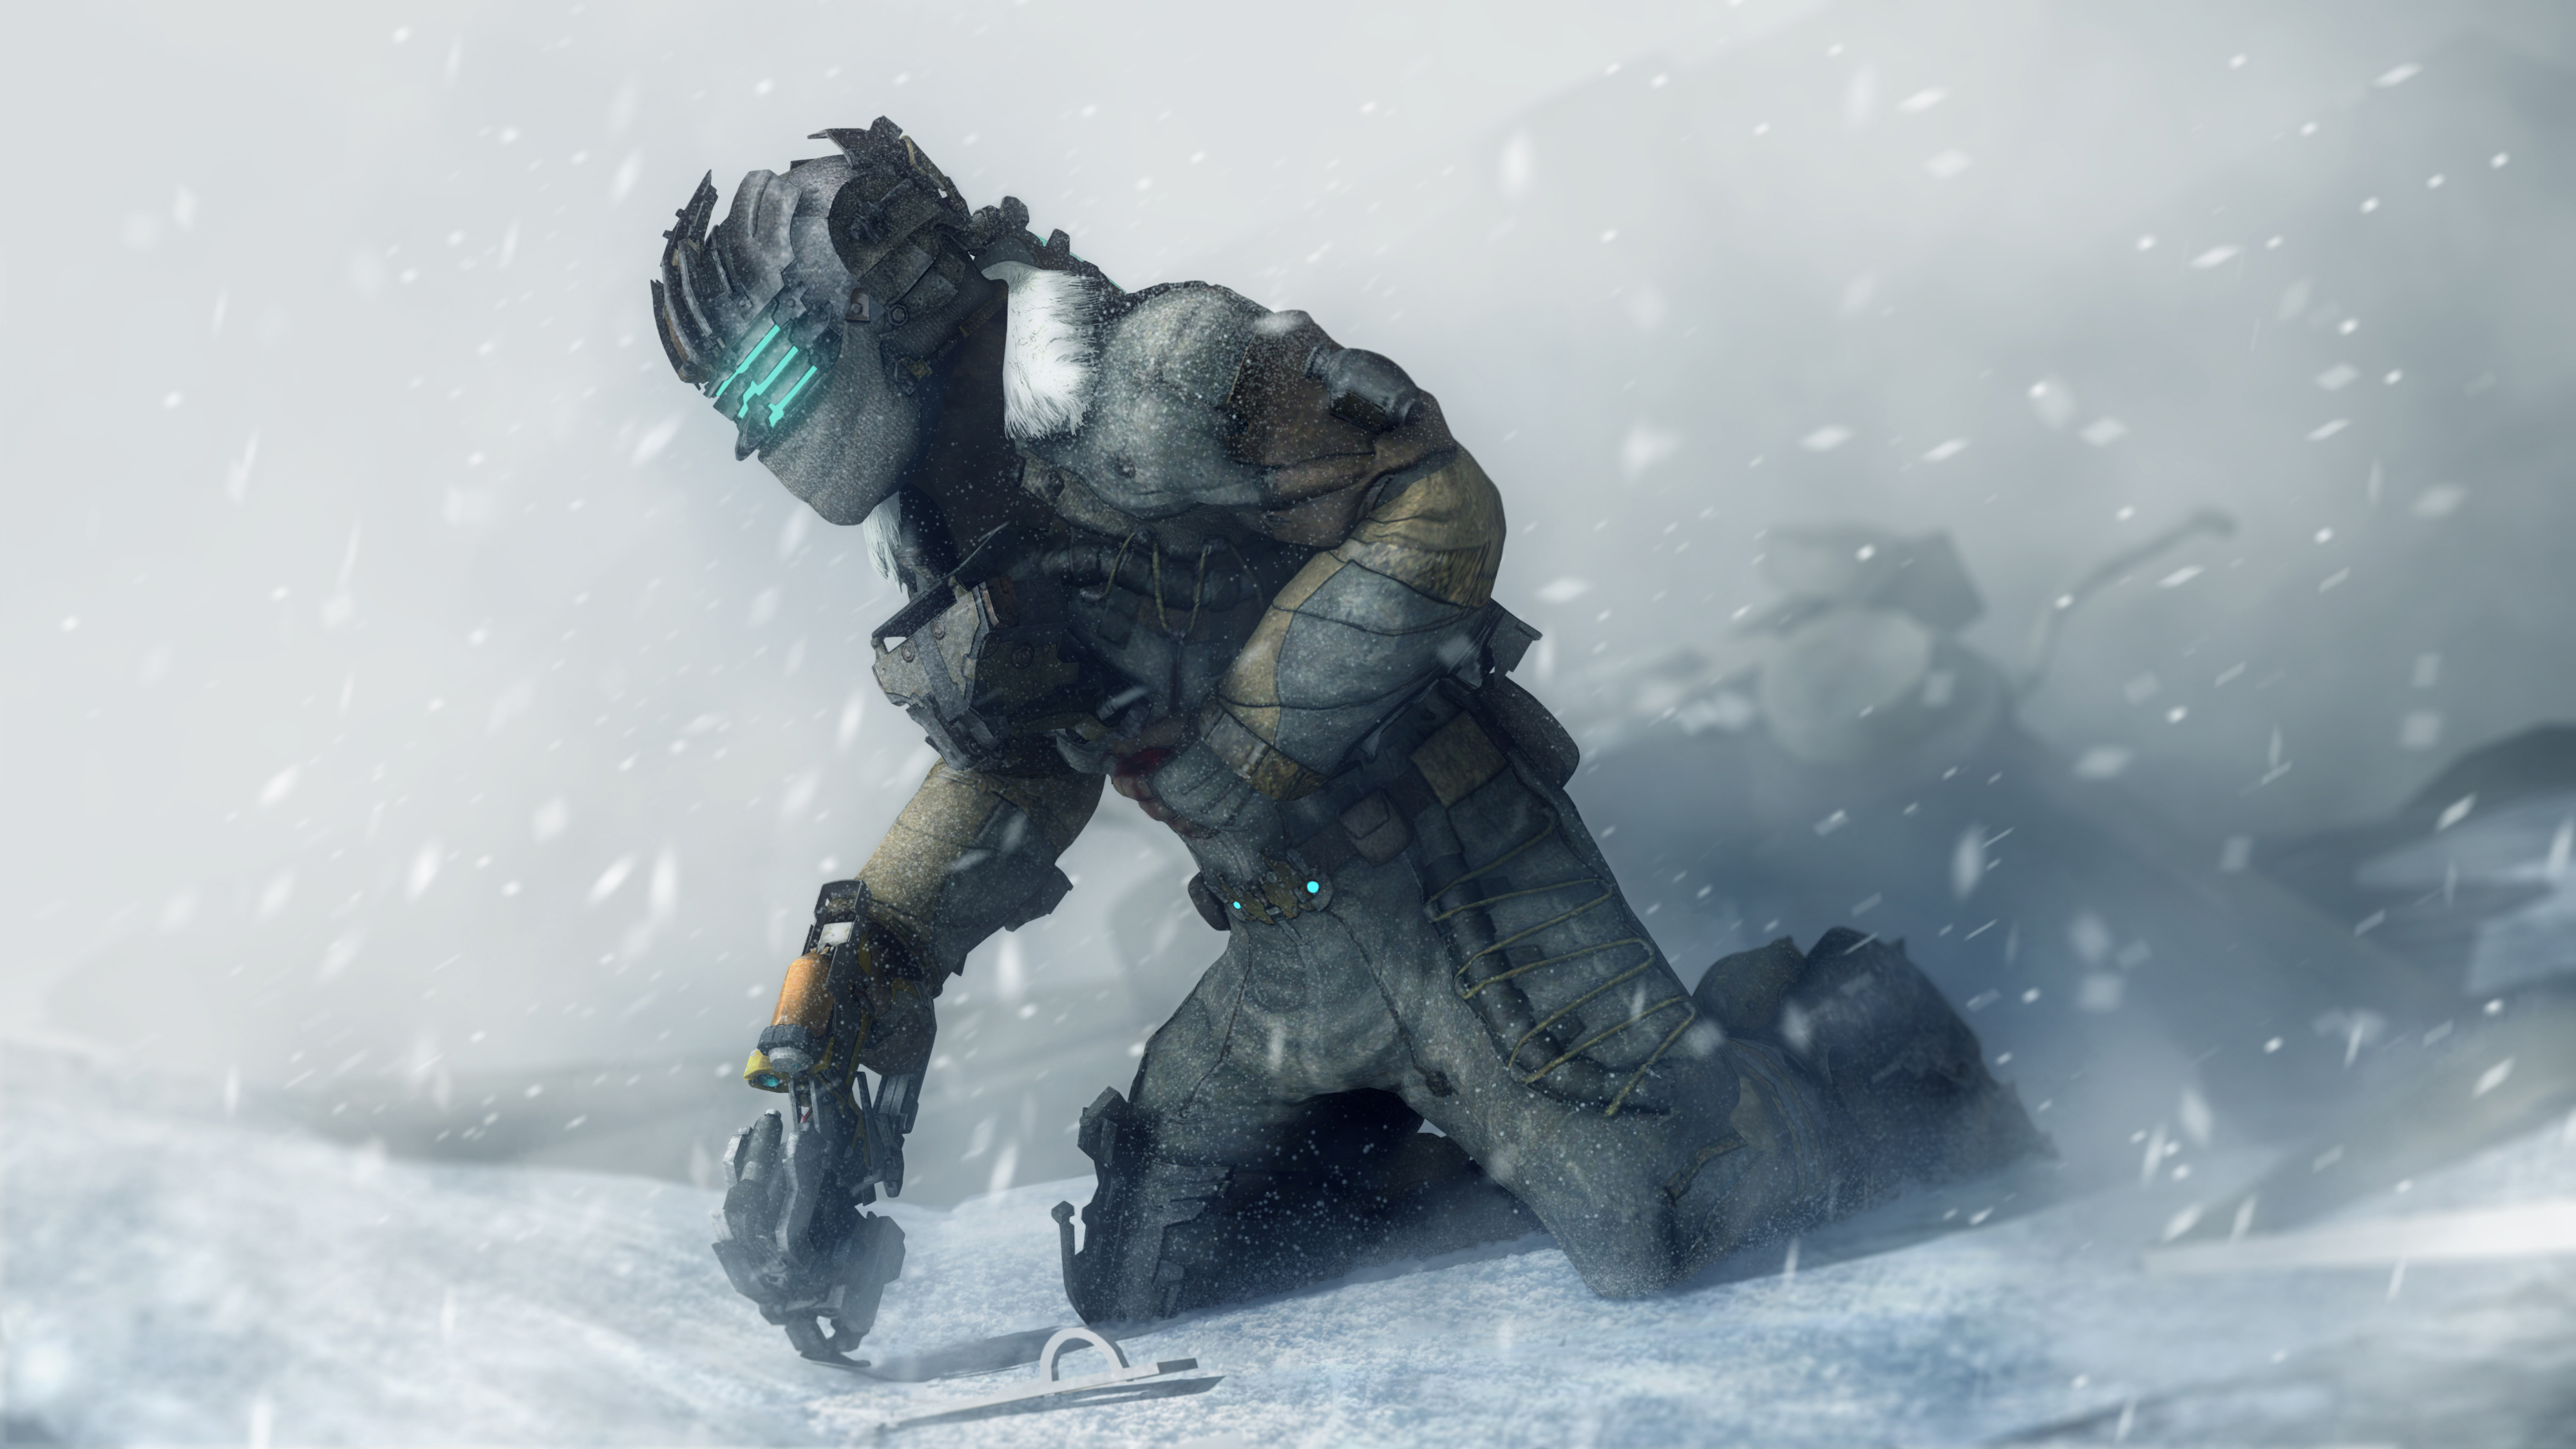 2560x1440 Dead Space 3 1440p Resolution Hd 4k Wallpapers Images Backgrounds Photos And Pictures